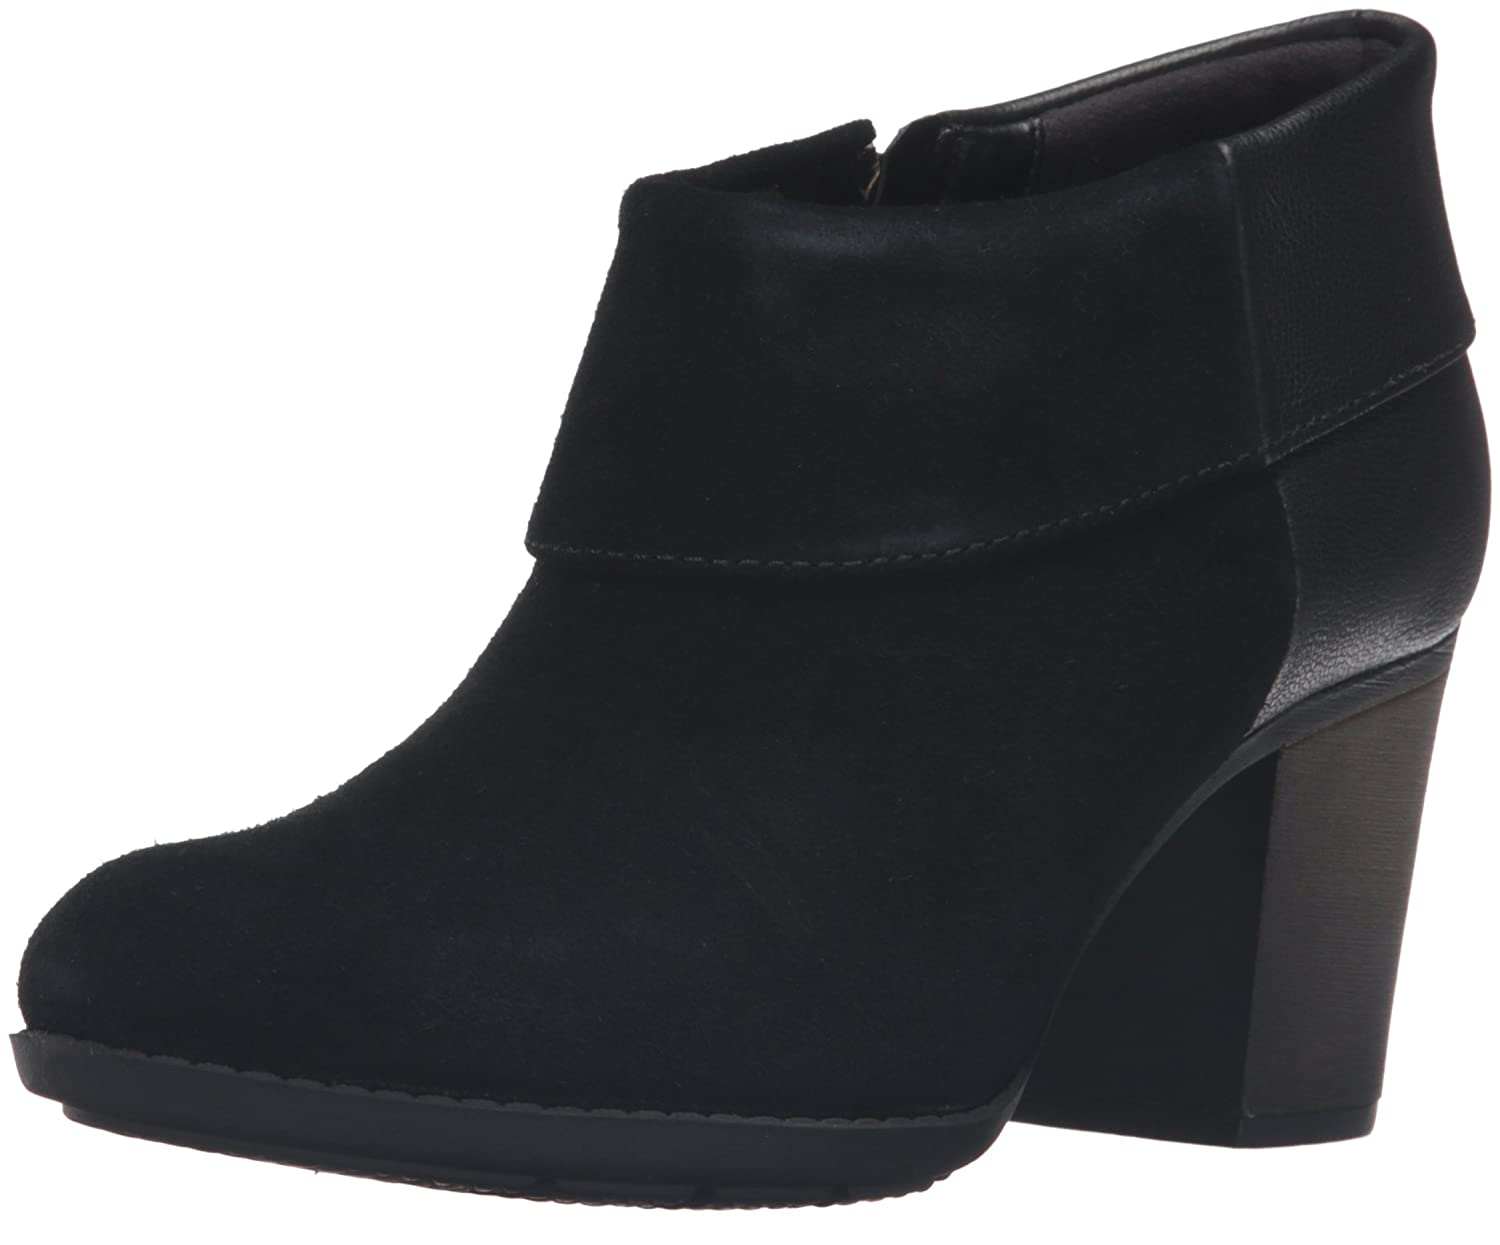 CLARKS Women's Enfield Canal Boot B0198WCW74 11 B(M) US|Black Suede